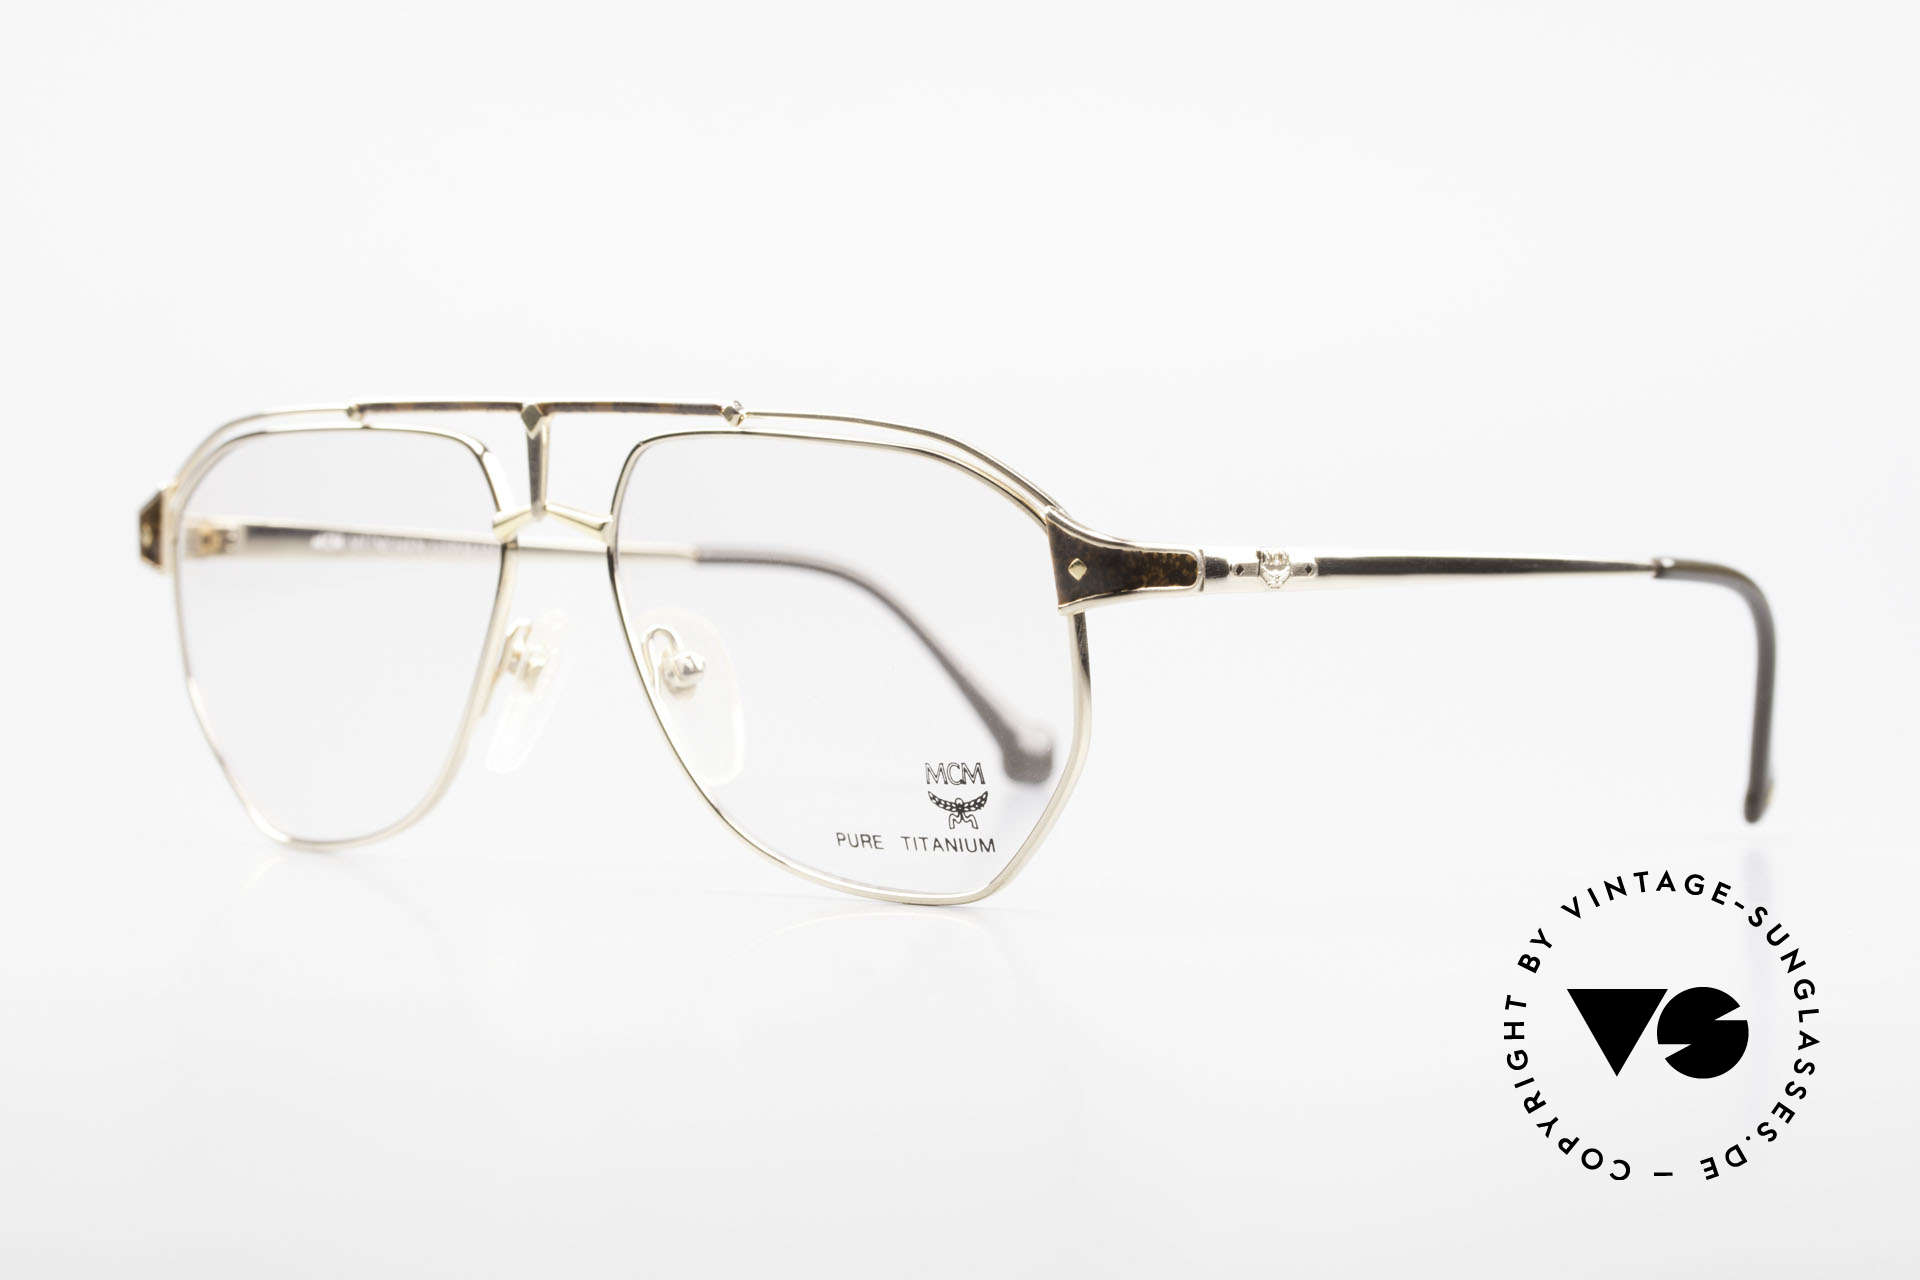 MCM München 6 XL 90's Luxury Vintage Glasses, but still lightweight and comfortable (Pure Titanium), Made for Men